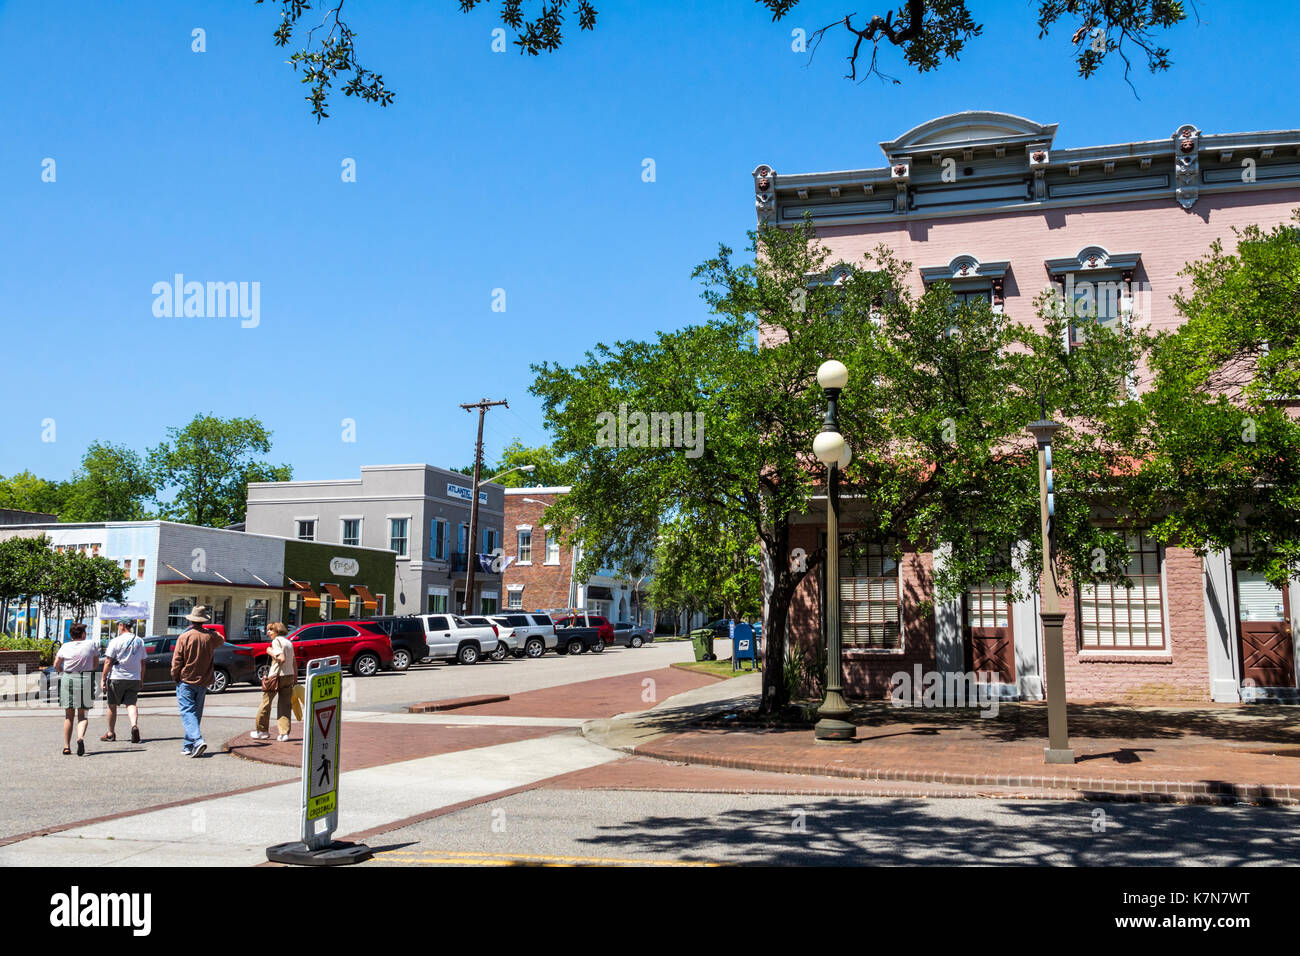 South Carolina Georgetown Lowcountry historic district Front Street - Stock Image